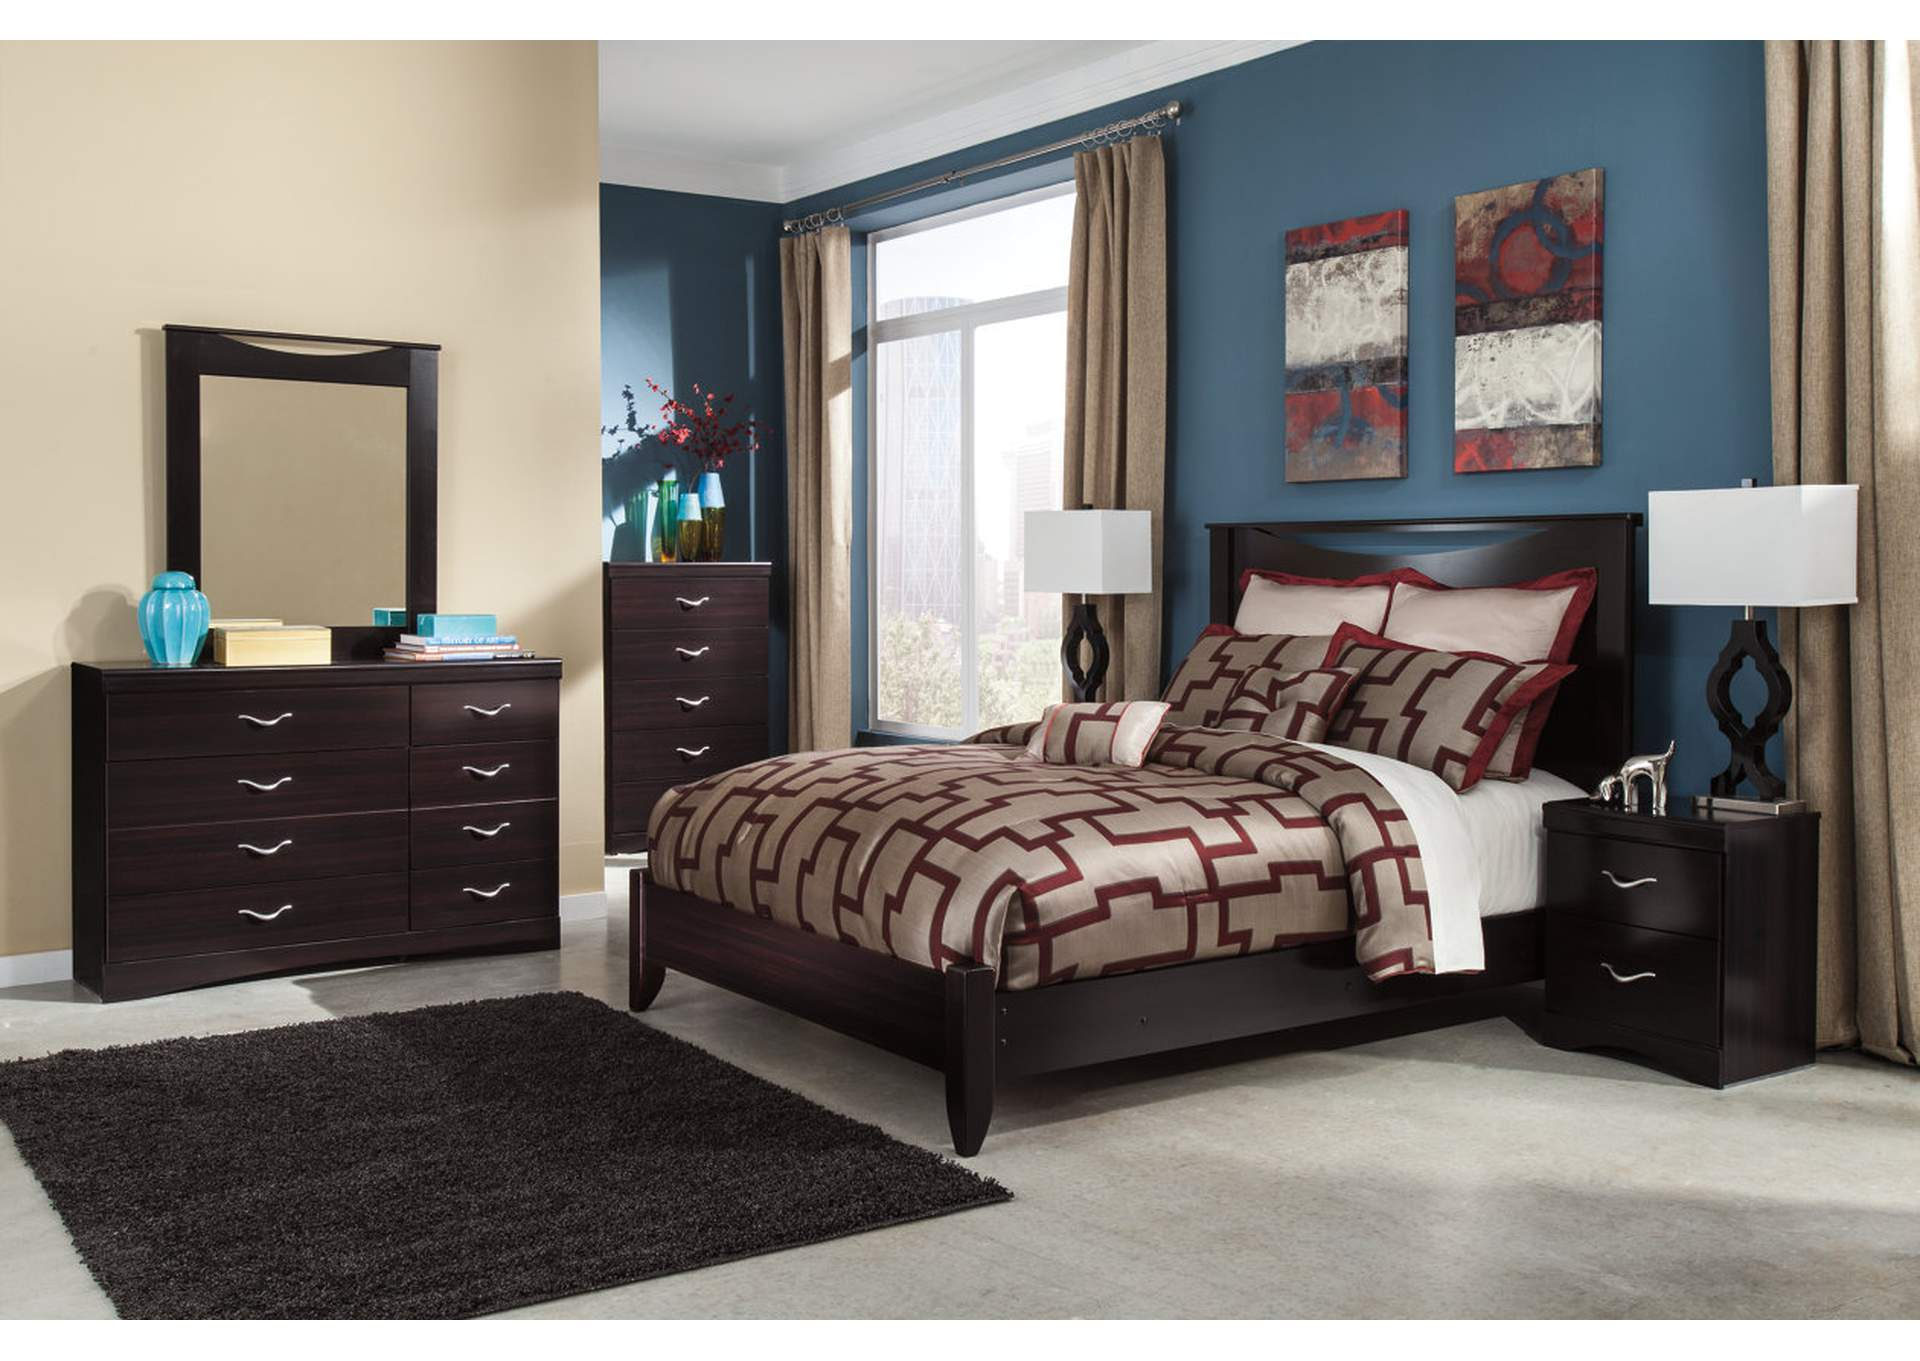 Zanbury Queen Panel Bed w/Dresser, Mirror & Drawer Chest,Signature Design By Ashley